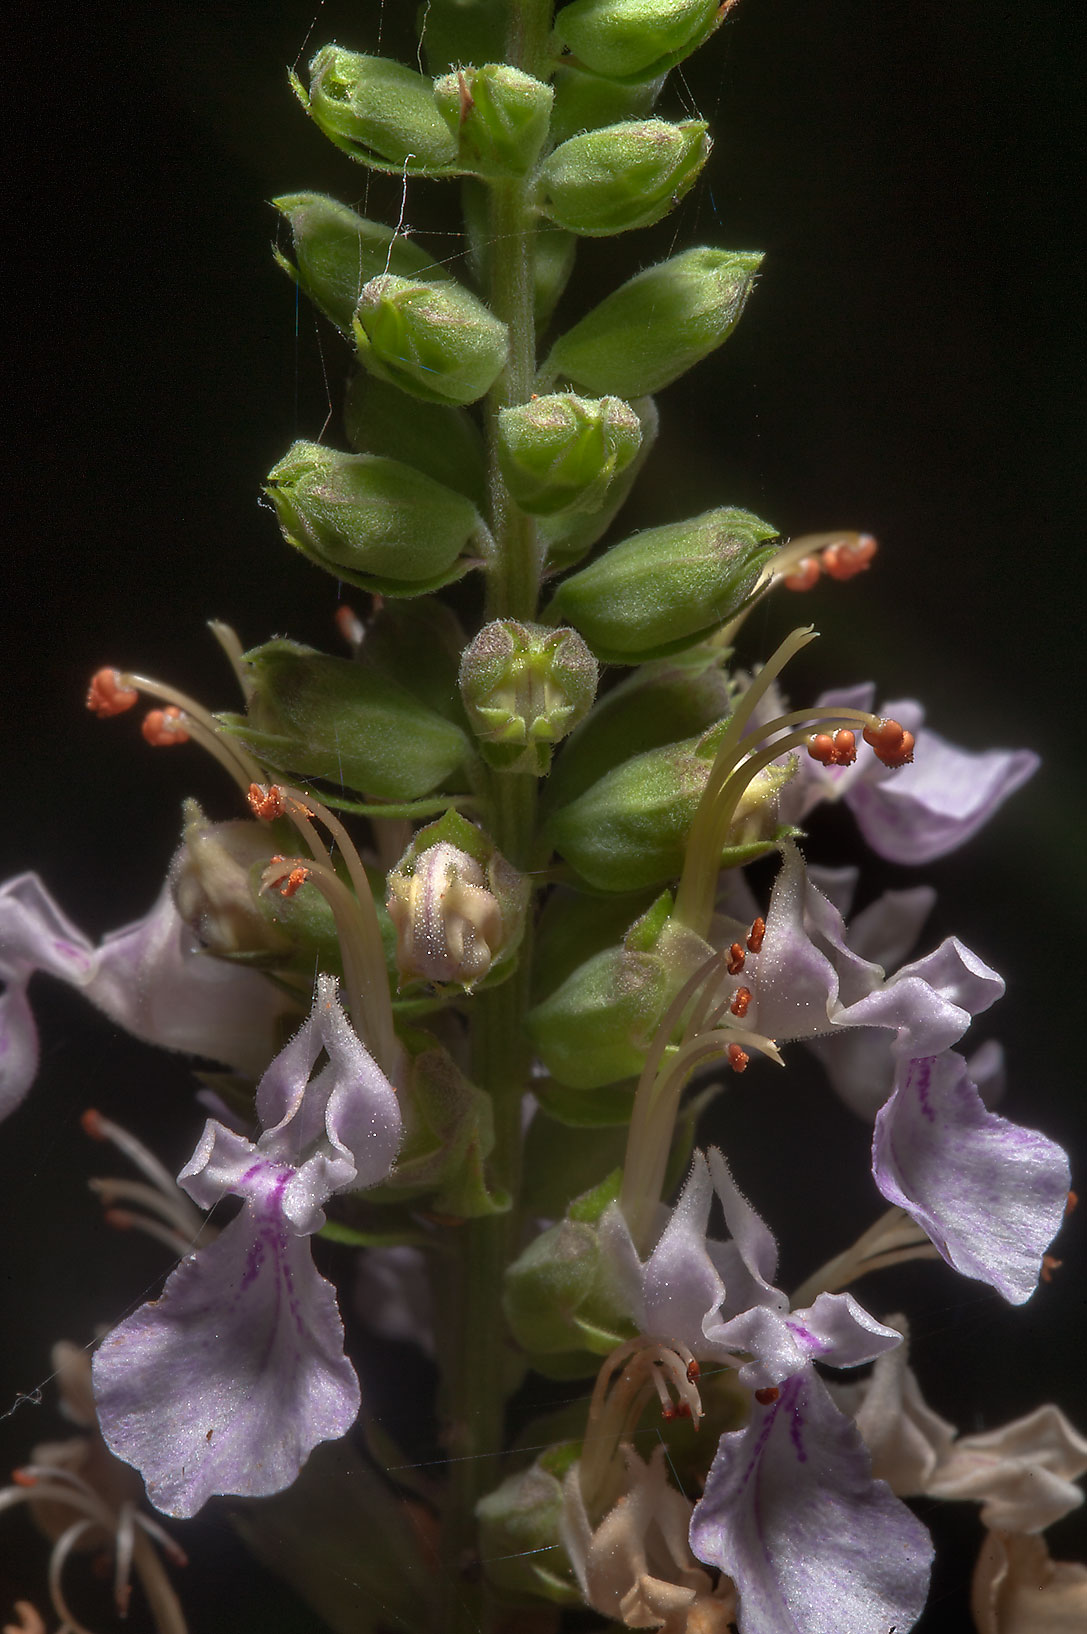 Teucrium canadense (Canada germander) in Lick Creek Park. College Station, Texas